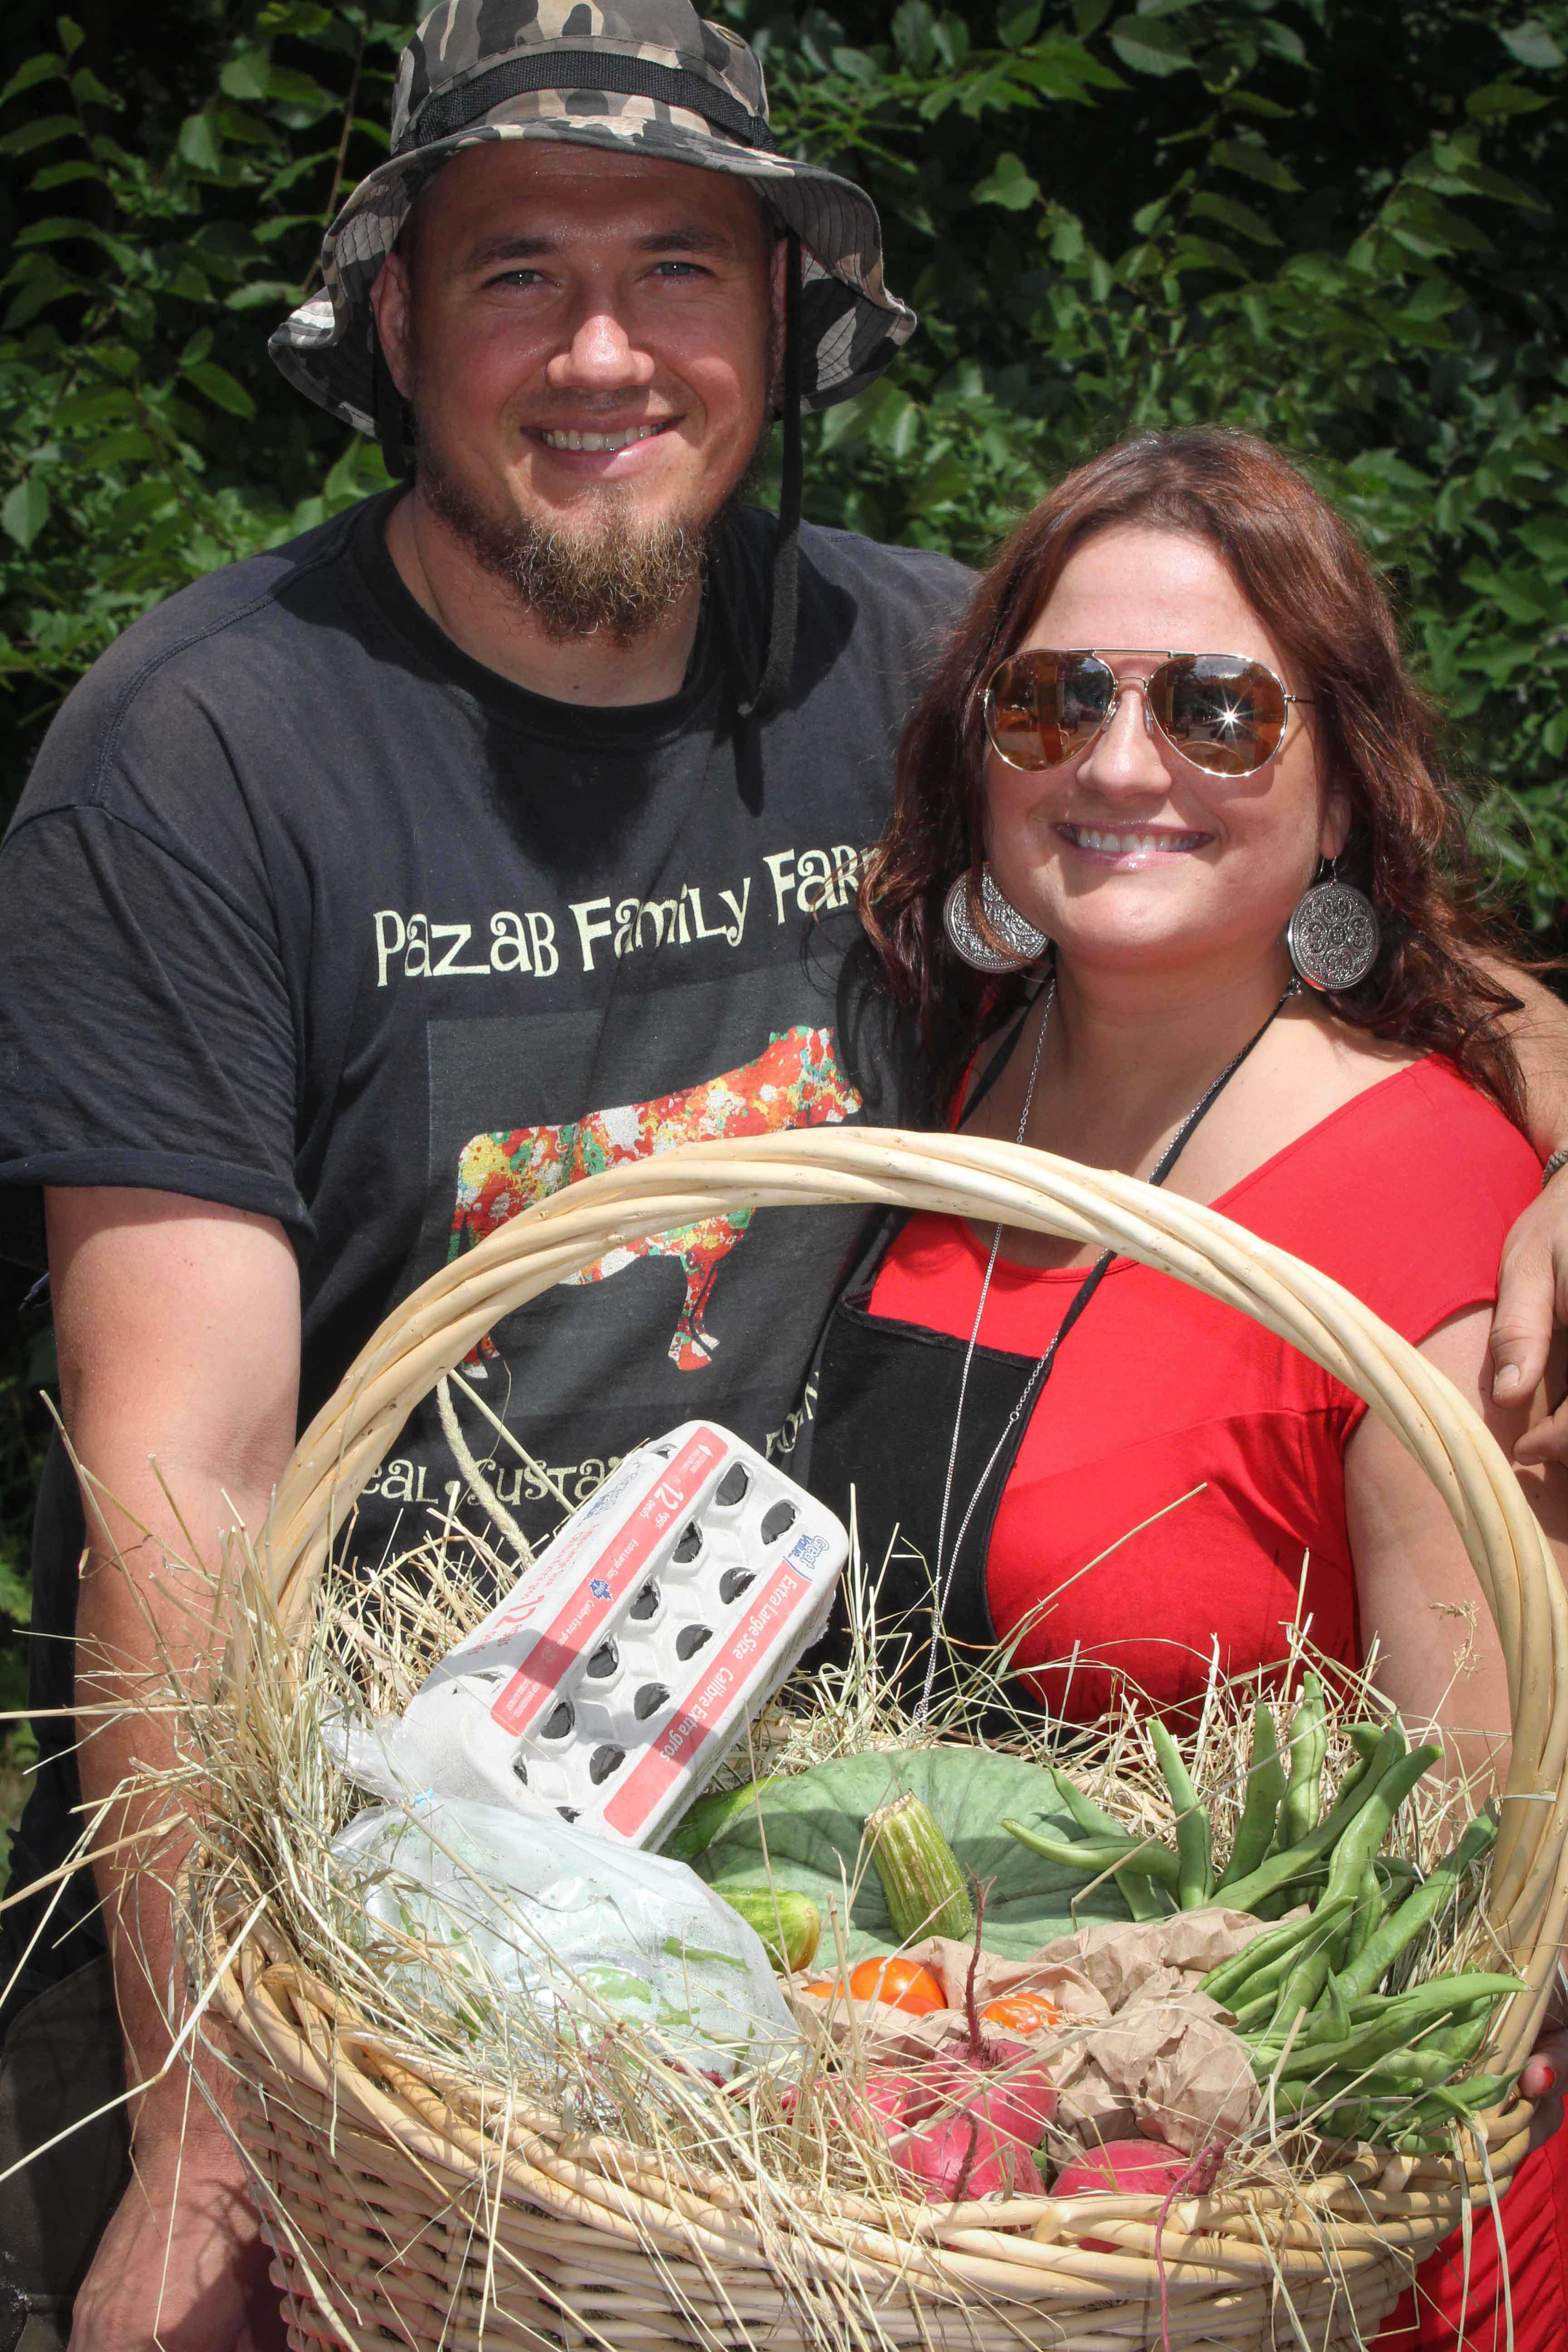 STITTSVILLE, ON, August 14, 2016. Some fresh produce baskets Art in the Park at Village Square. Barry Gray (StittsvilleCentral)